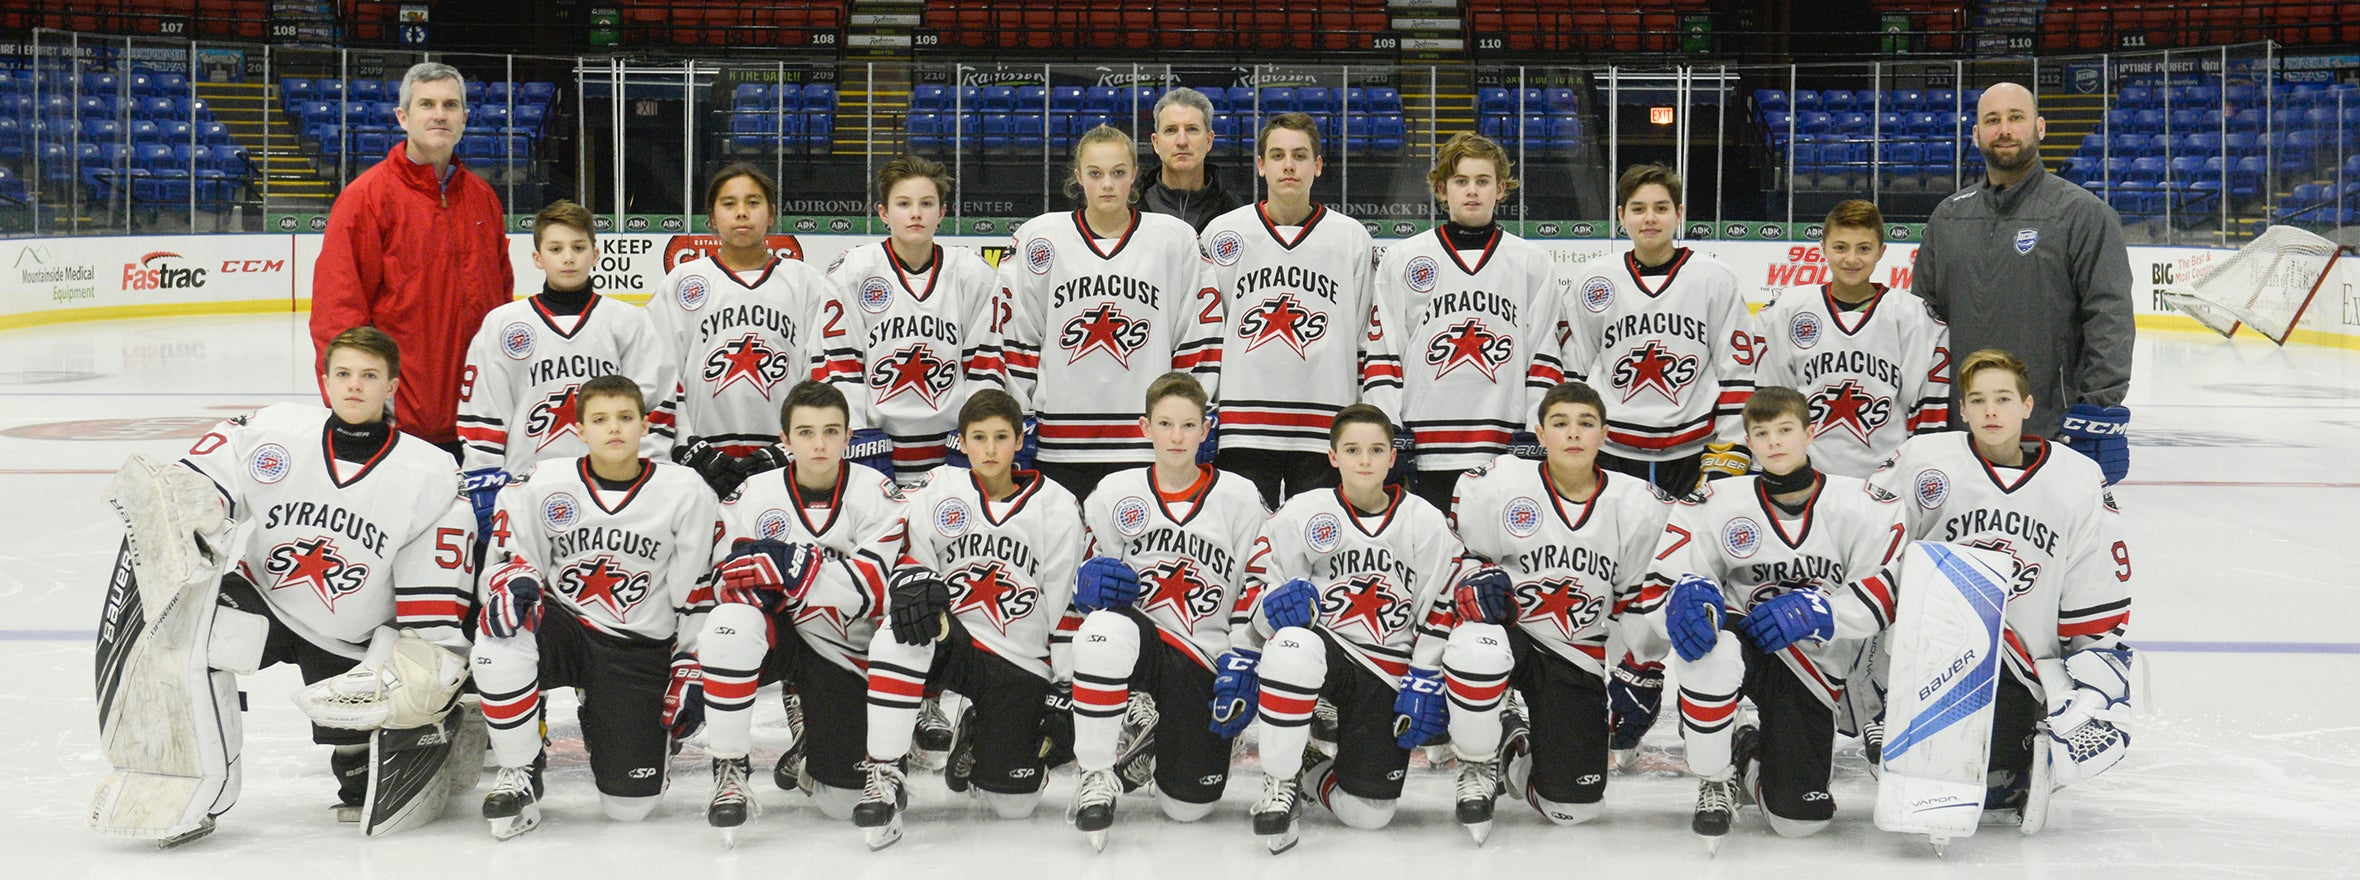 SYRACUSE STARS PEE WEE TEAM PREPPING FOR QUEBEC TOURNAMENT